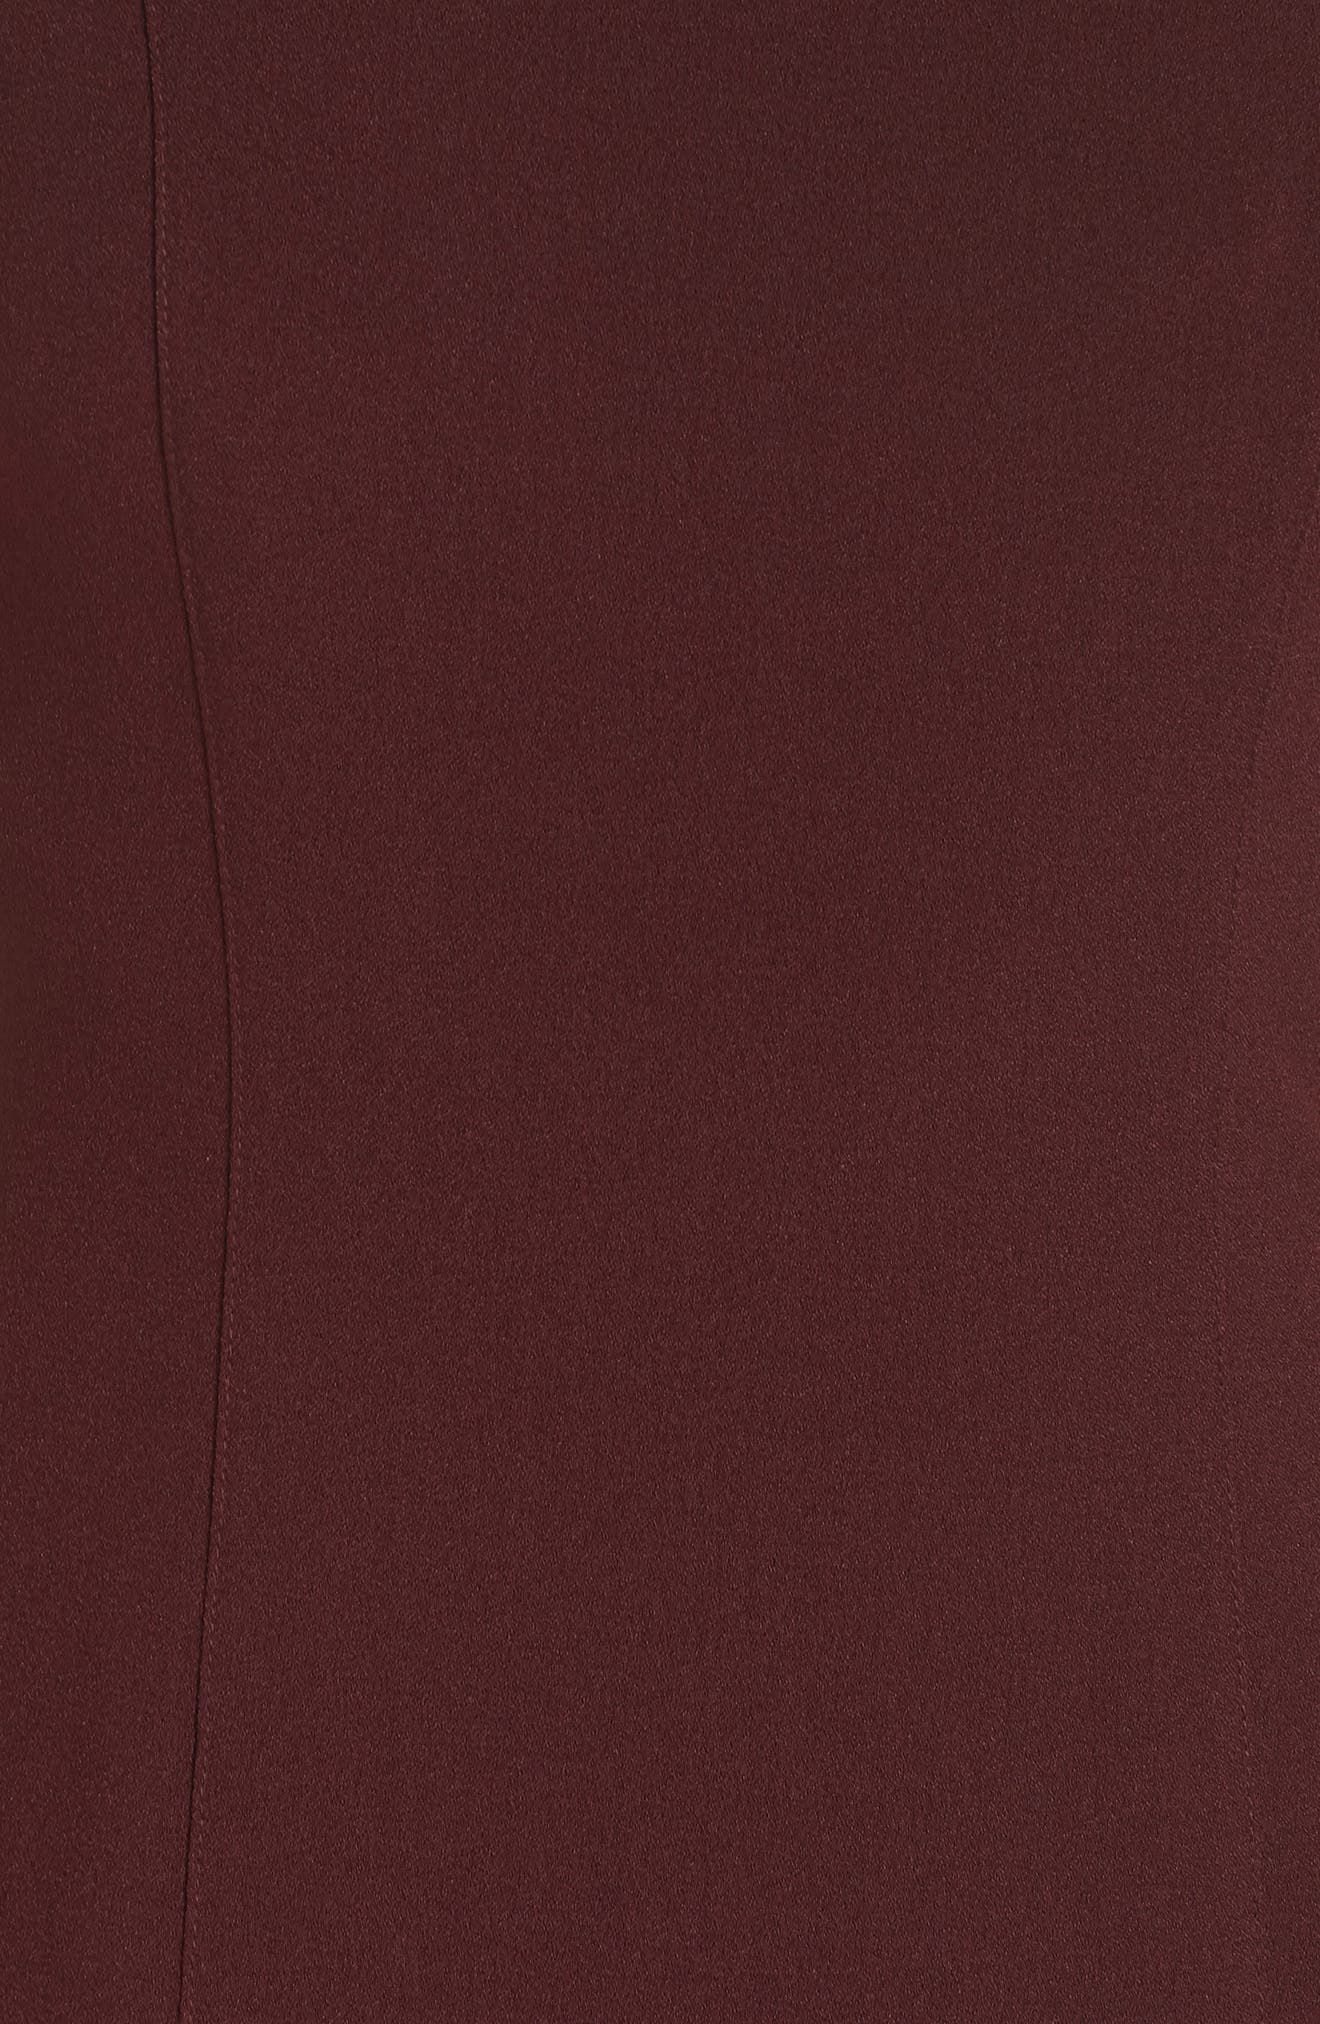 Stretch Crepe Sheath Dress,                             Alternate thumbnail 6, color,                             AUBERGINE